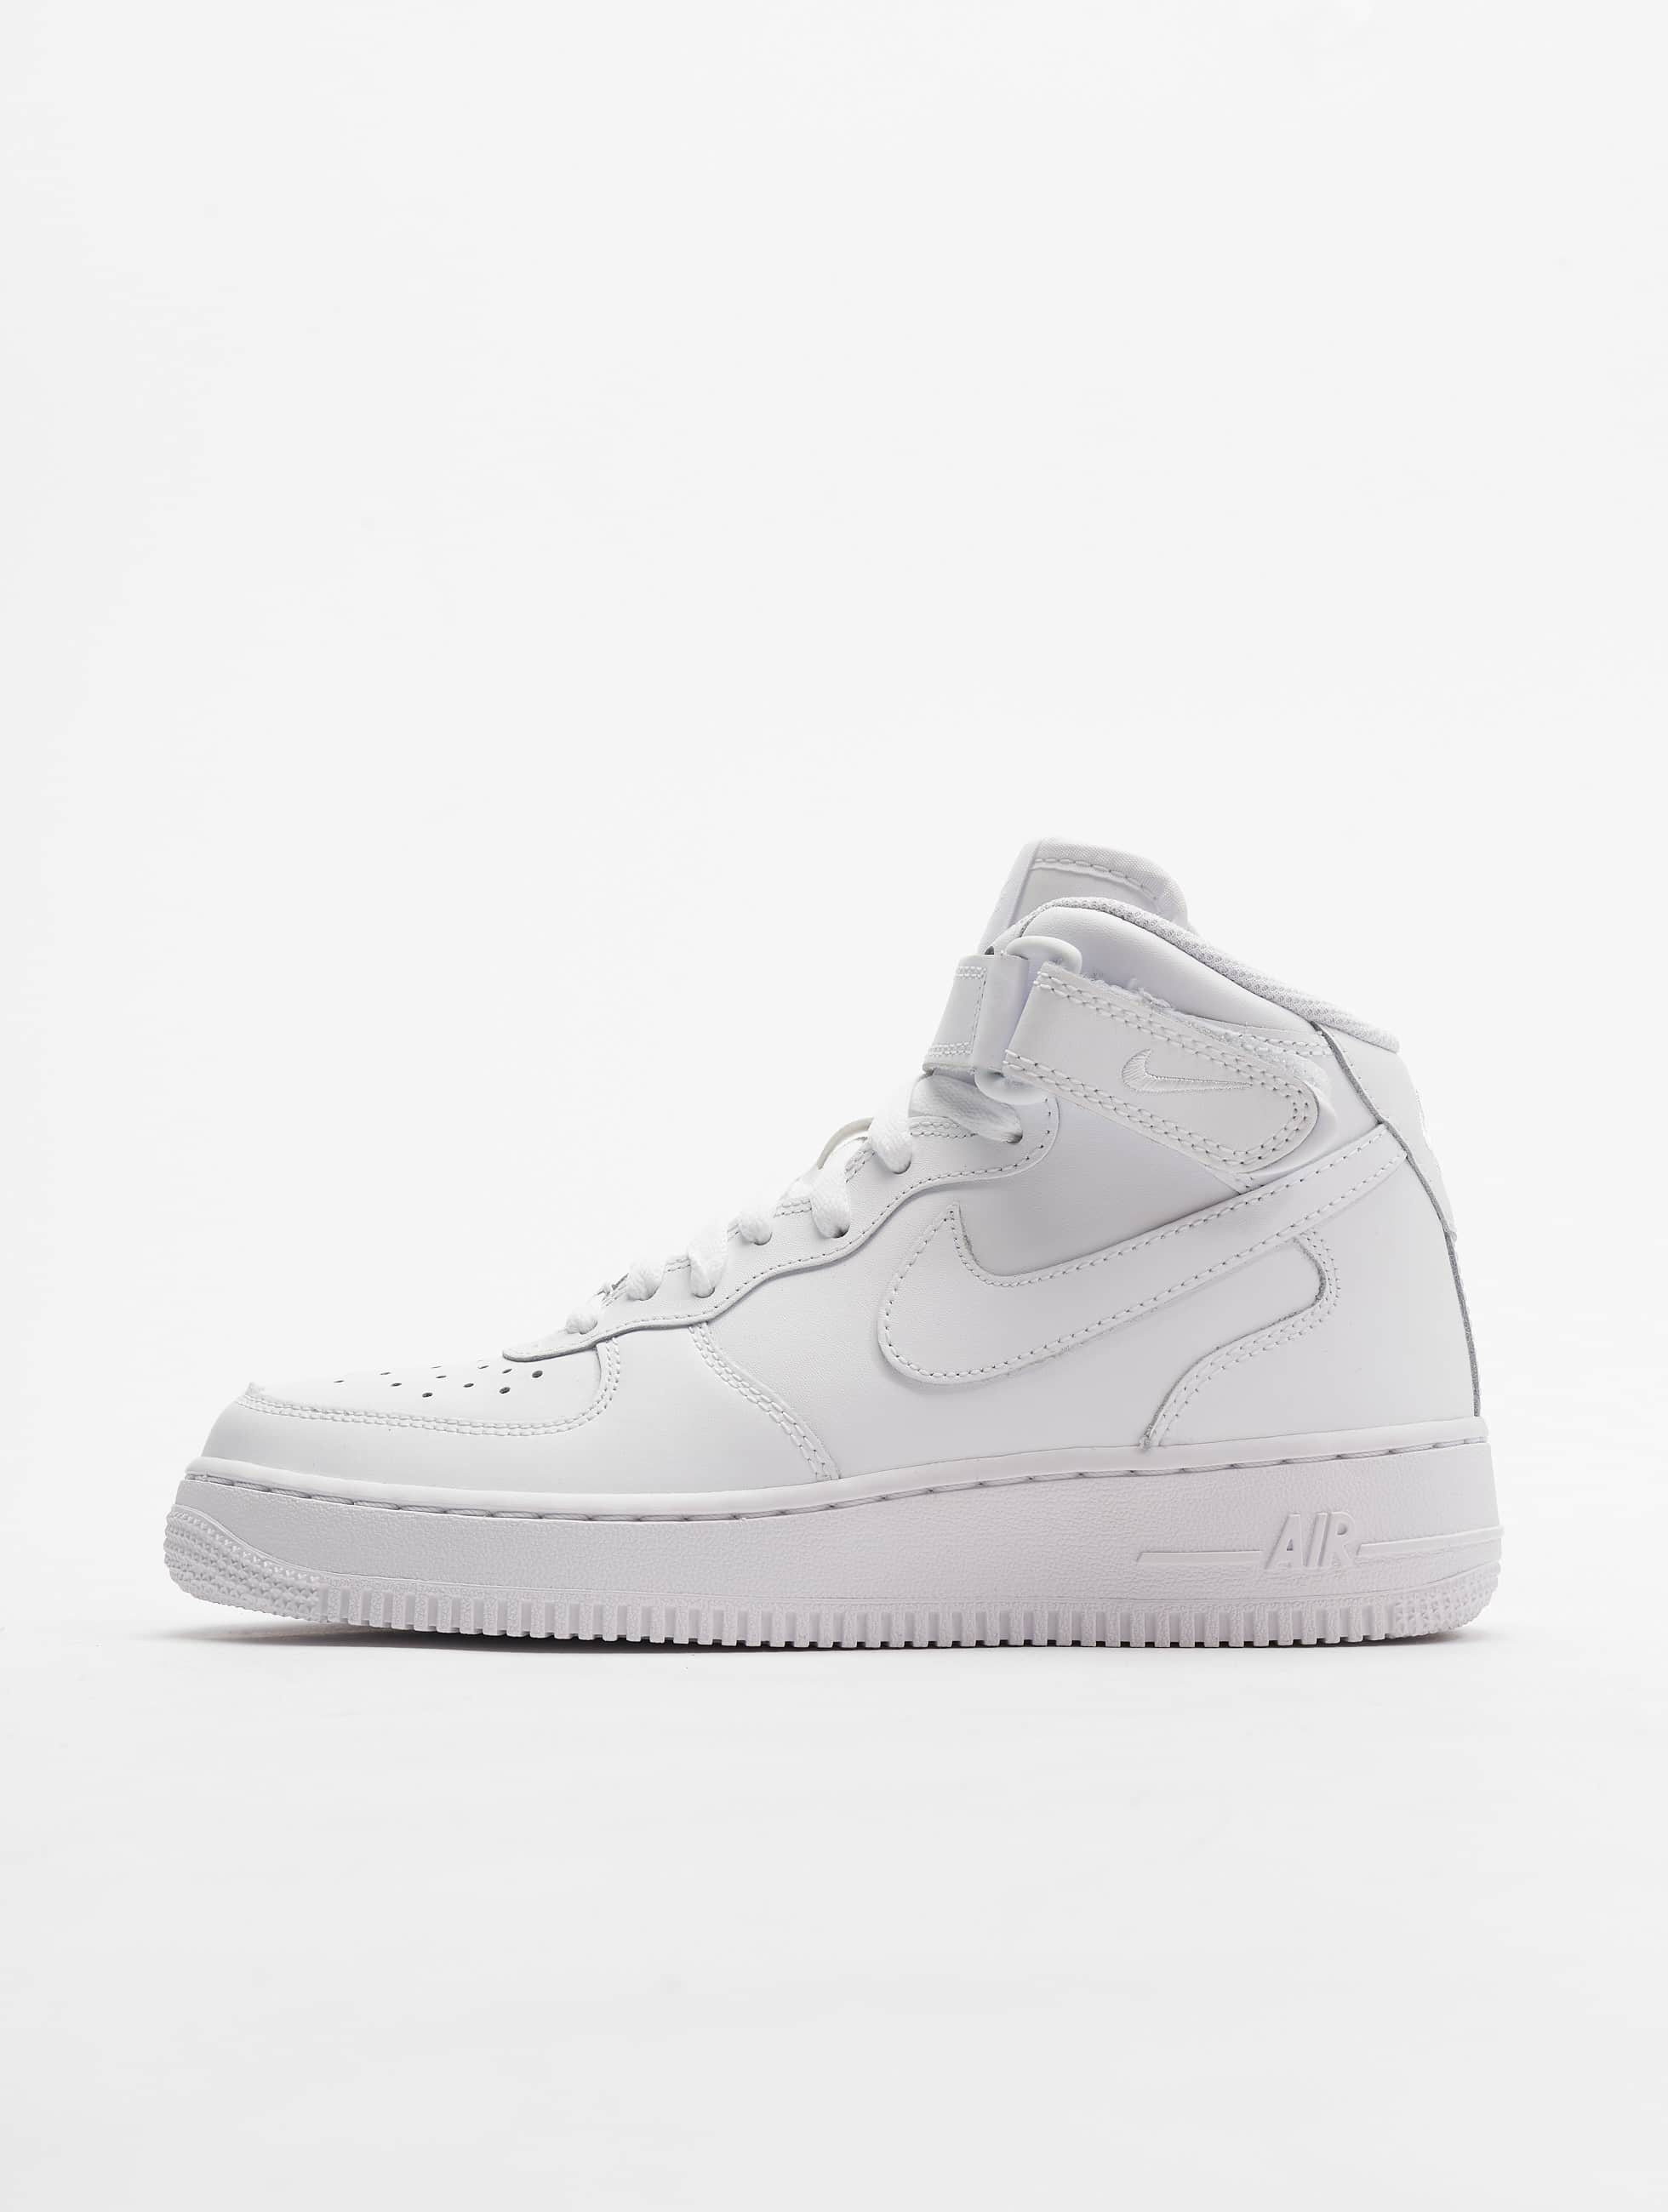 Nike schoen / sneaker Air Force 1 Mid Kids Basketball in wit